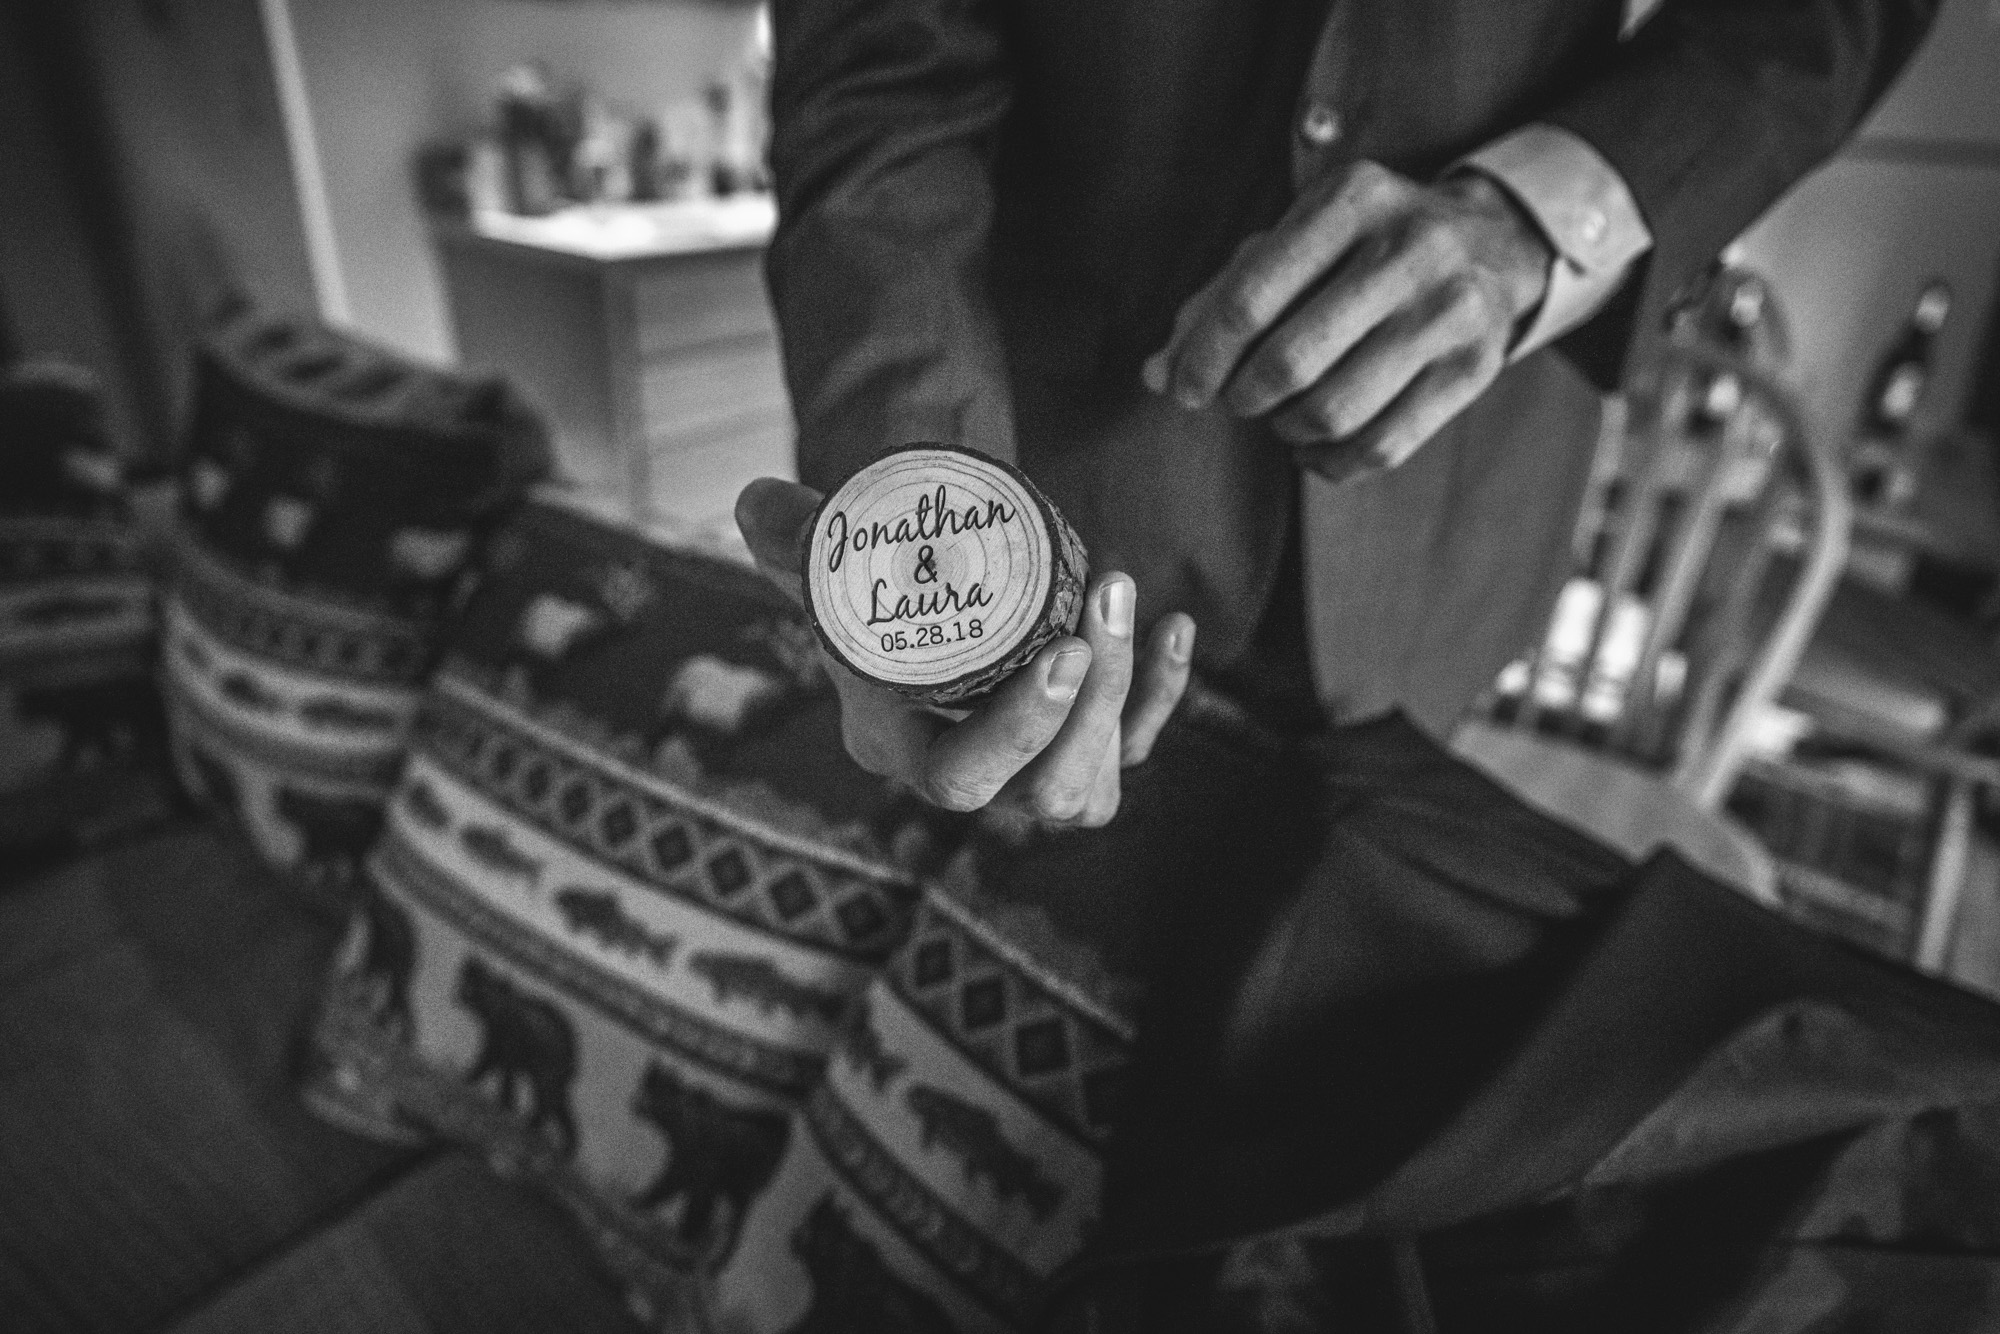 """Groom holds a small, circular wooden ring box engraved with """"Jonathan & Laura 05.28.18"""", the date of their wedding"""